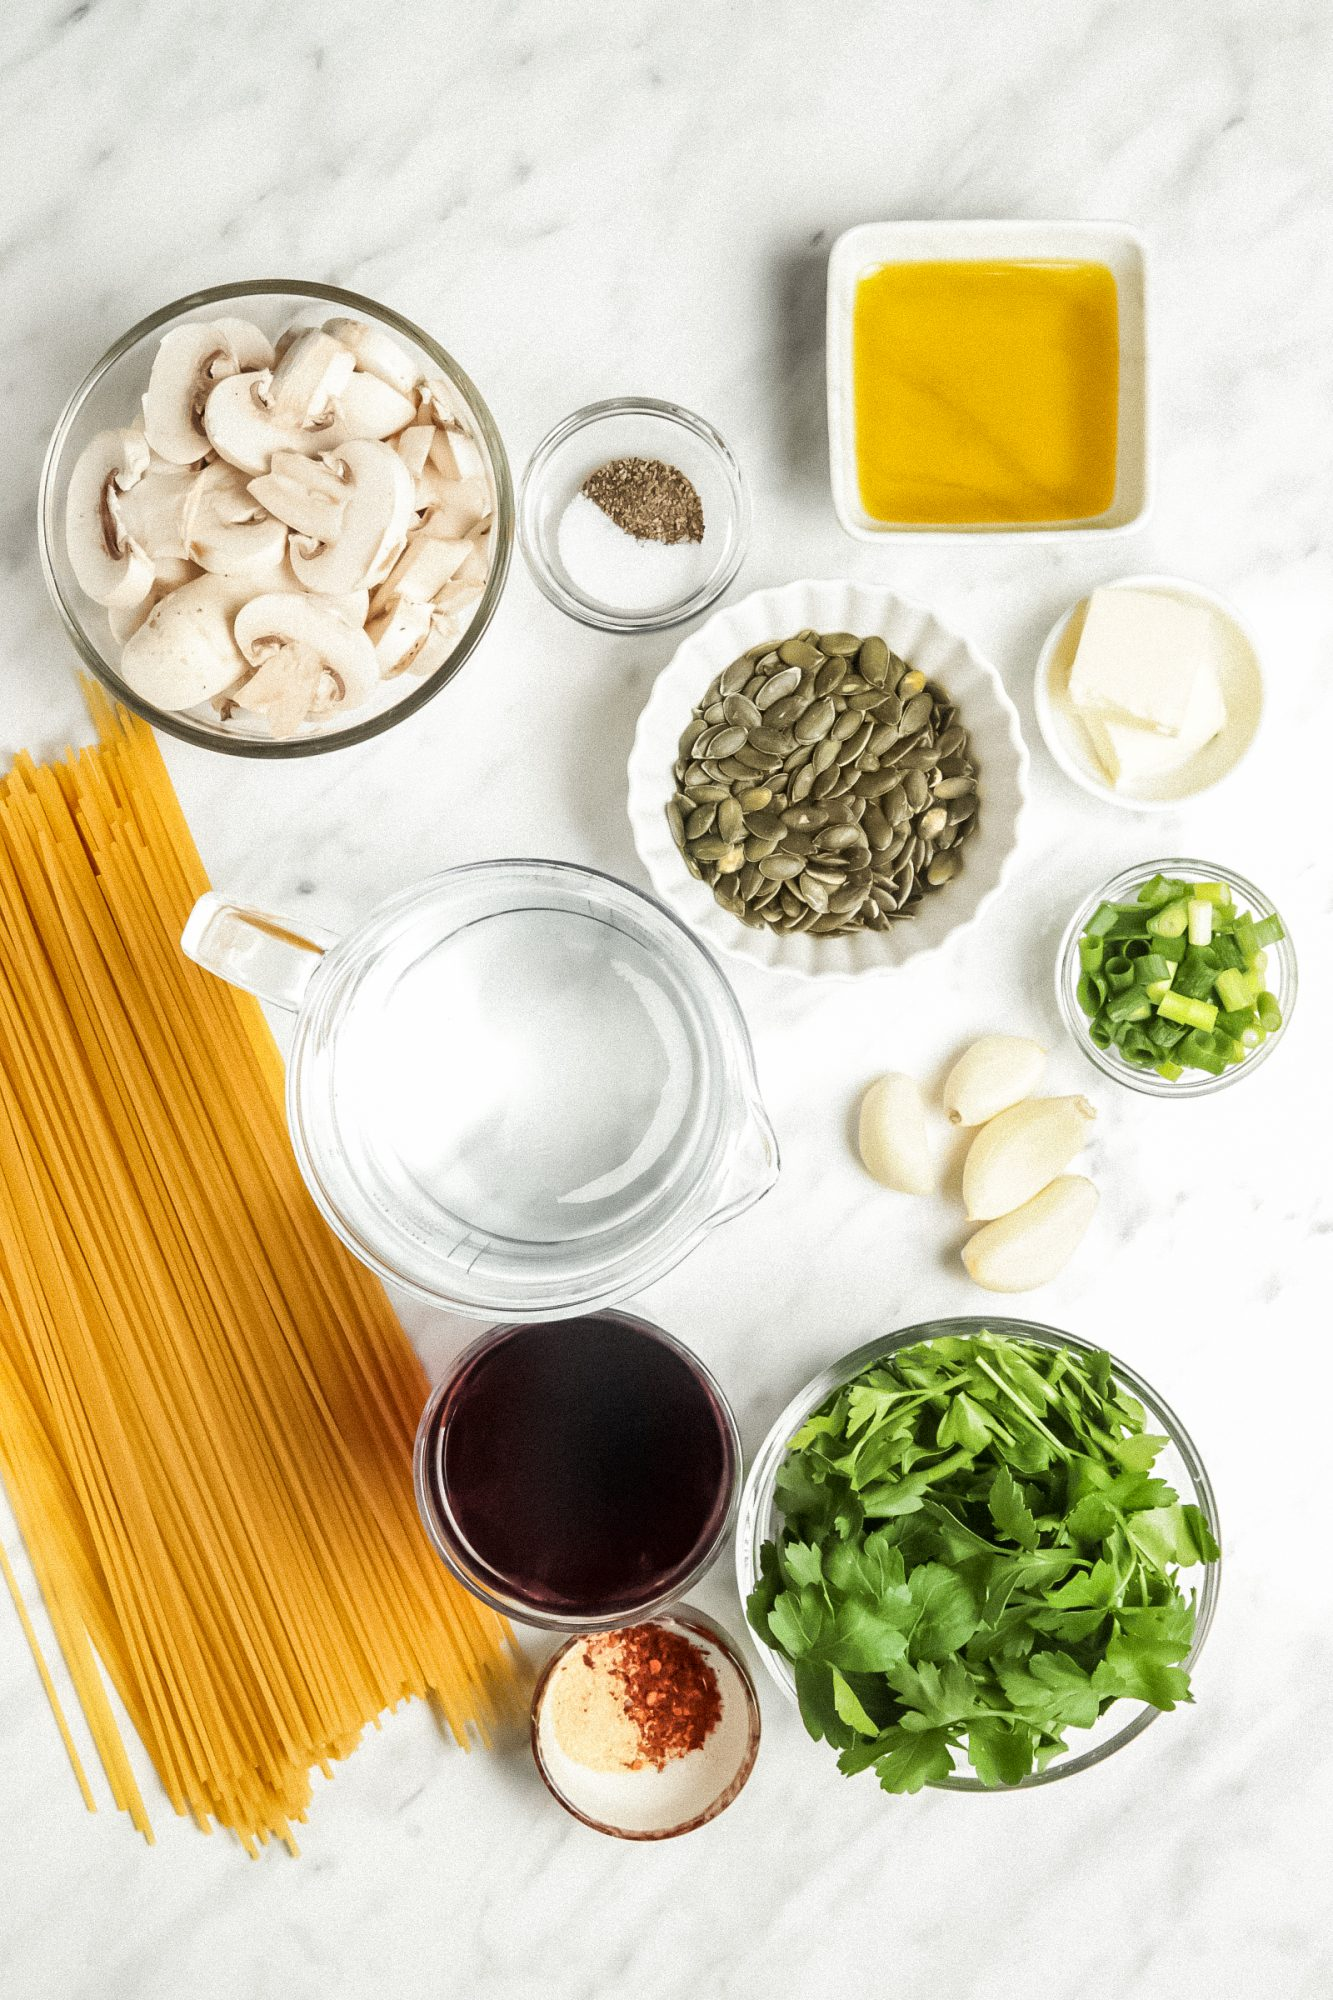 Ingredients for Red Wine Spaghetti